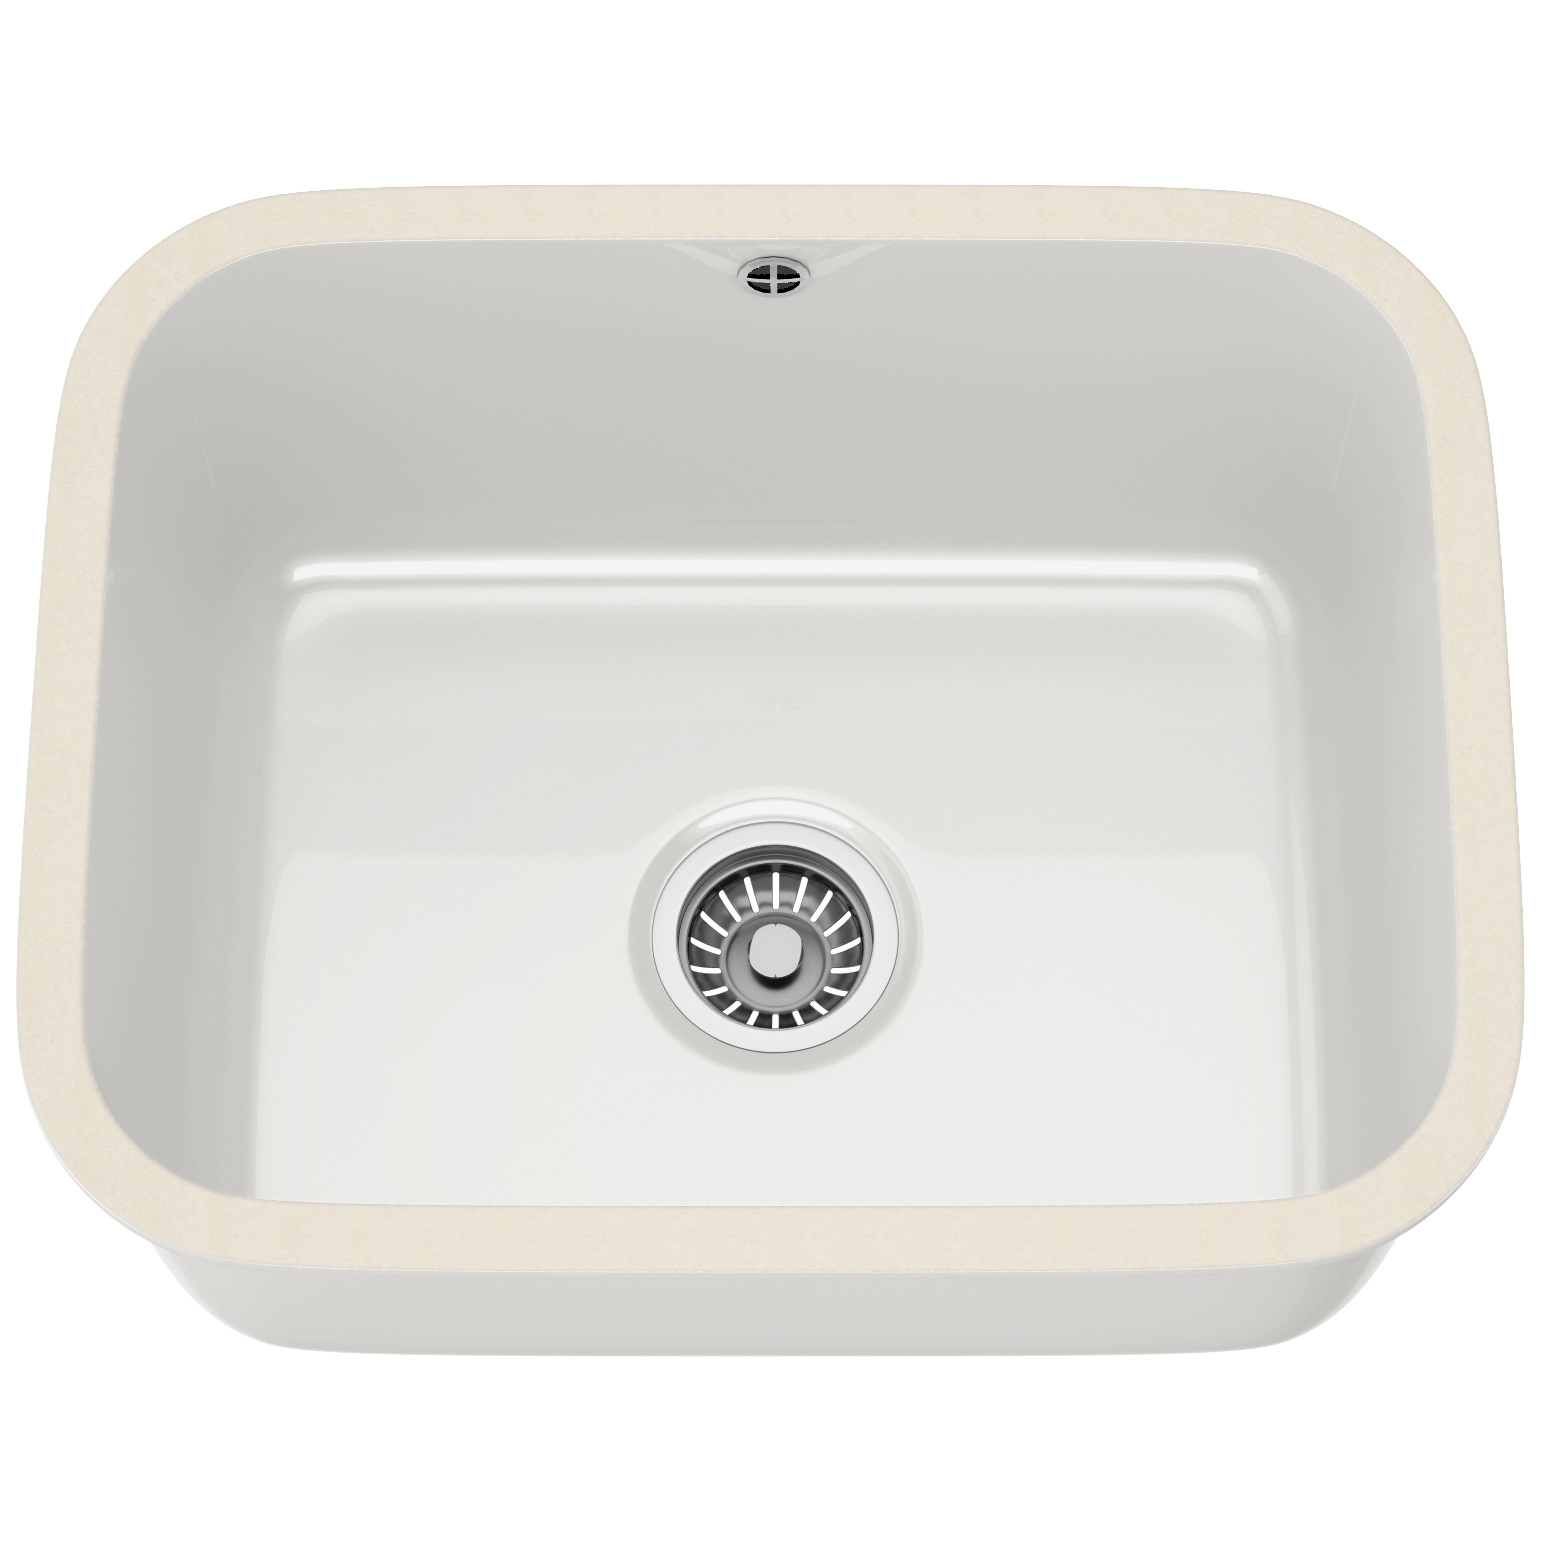 ... And B VBK 110 50 Ceramic White 1.0 Bowl Undermount Sink 126.0184.378